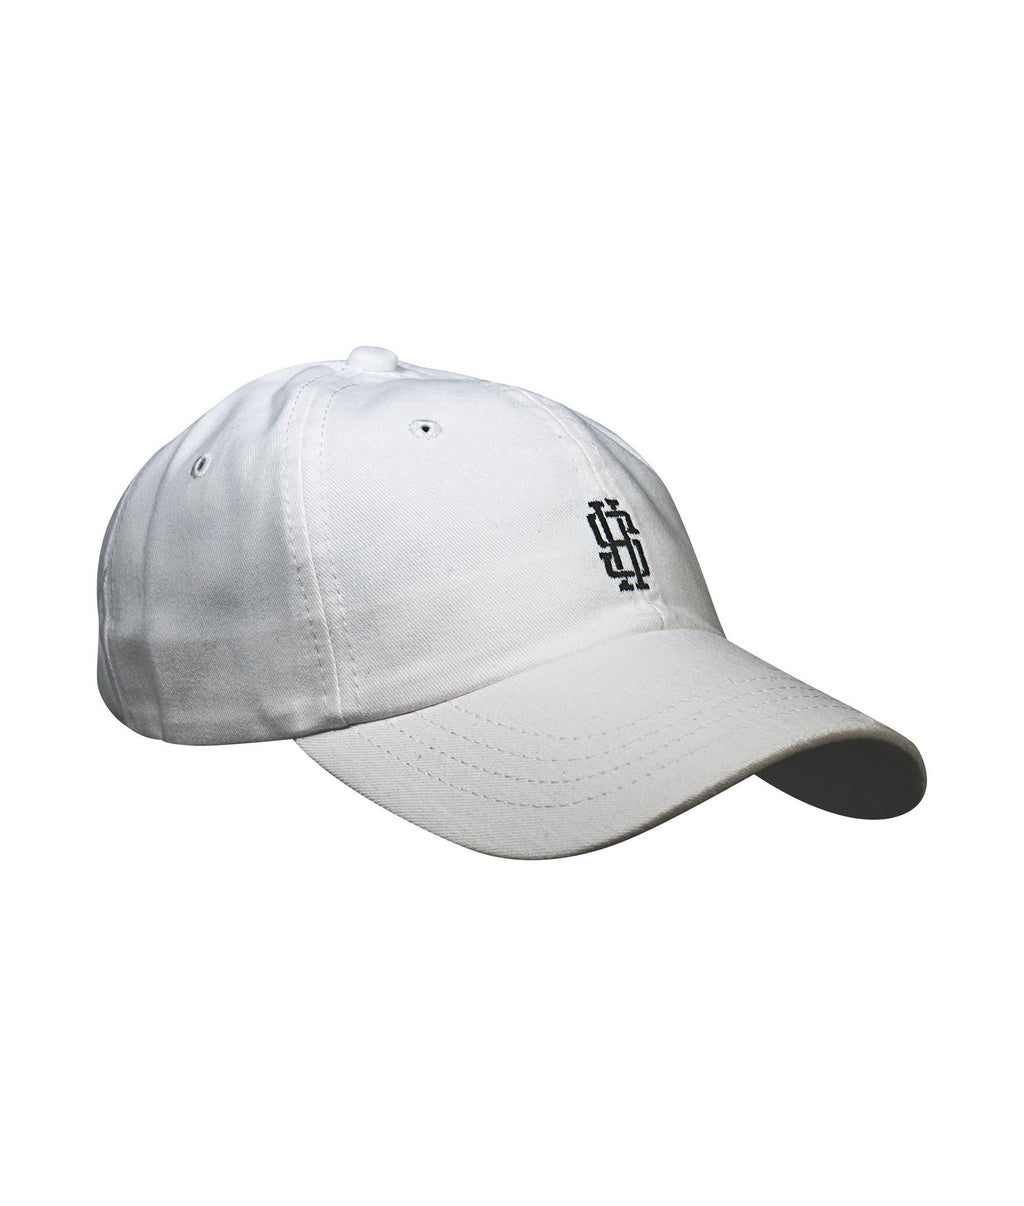 Monogram Dad Hat (White)